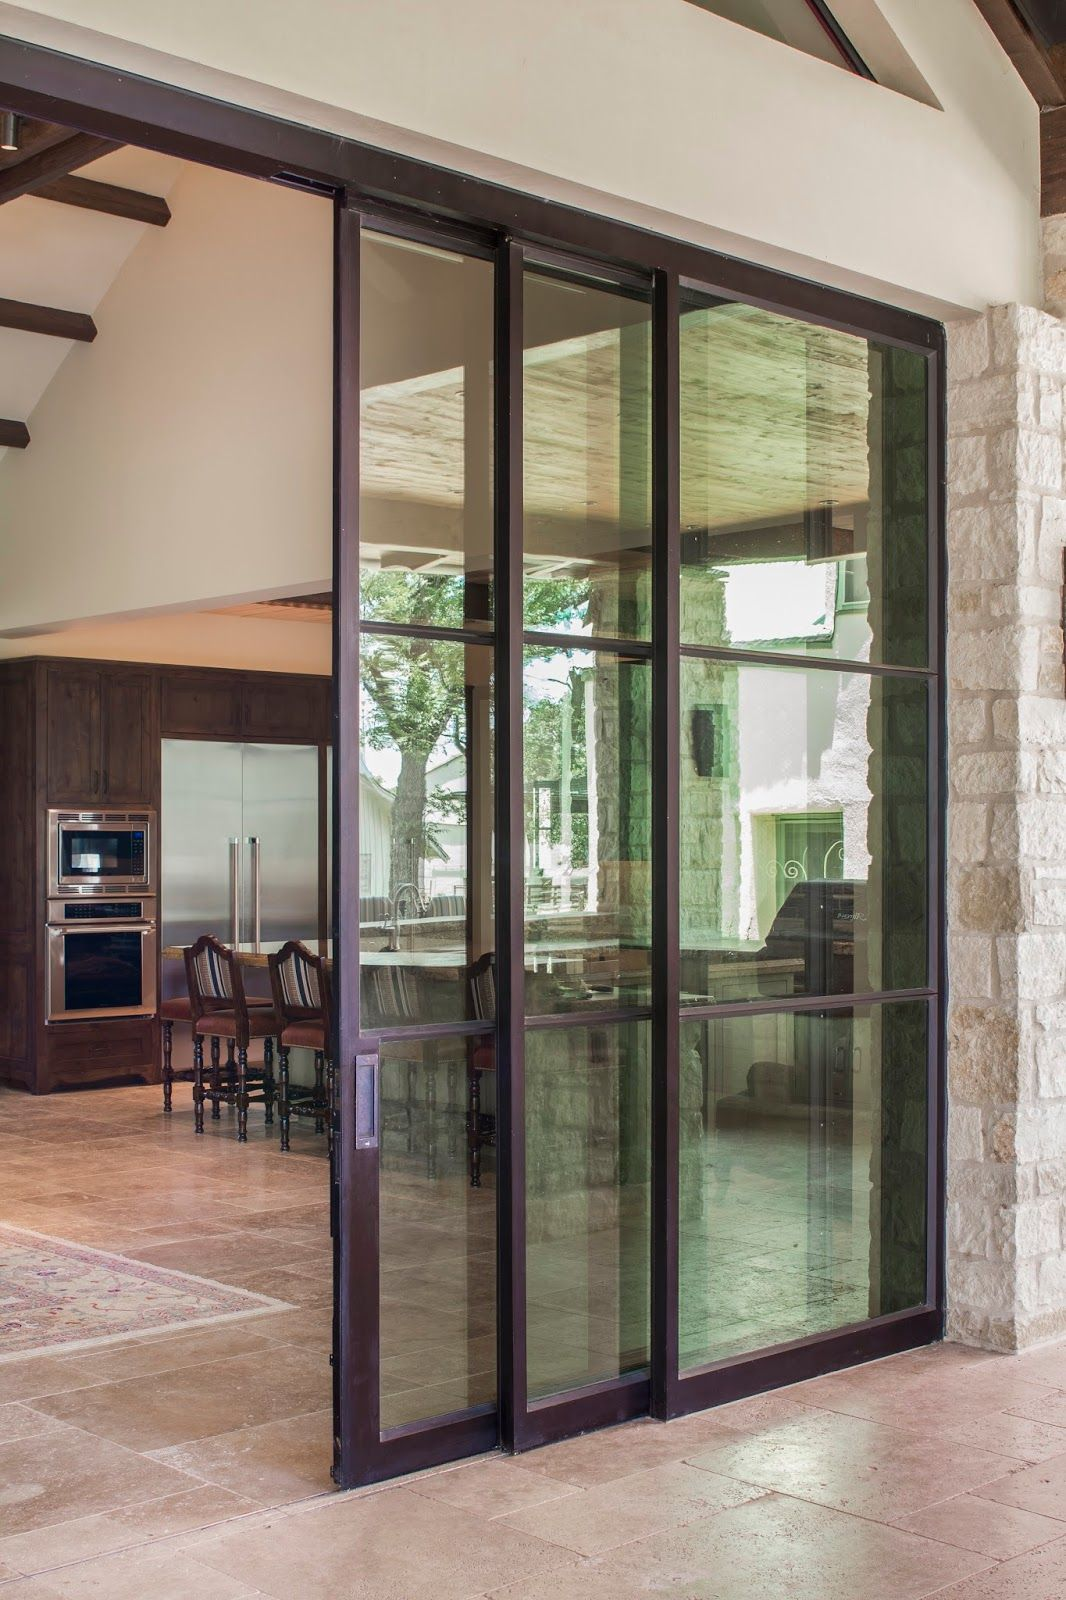 Portella Custom Steel Doors and Windows | Doors | Pinterest | Steel on double storm doors, entry doors, commercial double glass doors, double steel utility doors, double steel columns, astragals for steel doors, storage unit doors, residential steel double doors, double swing door, modern steel doors, double wood doors, double steel gates, double sliding patio doors, stainless steel doors, double steel door installation, exterior double glass doors,